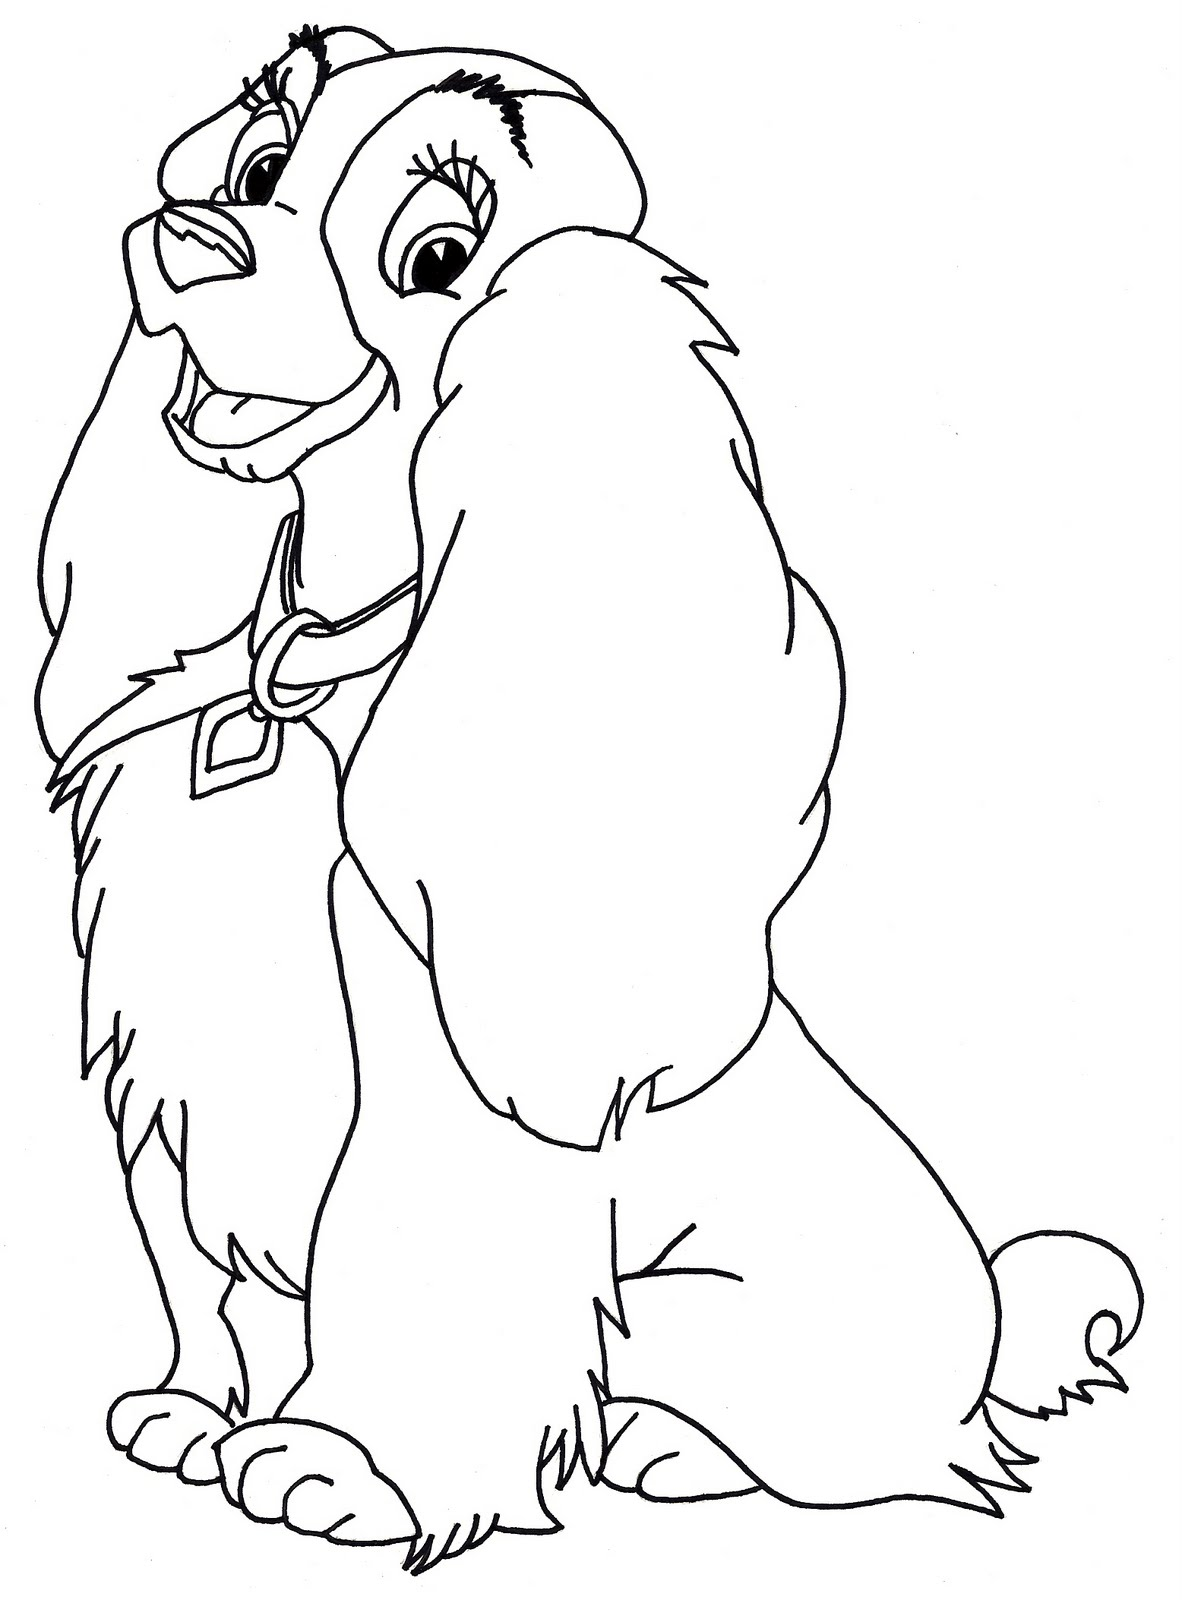 Walt Disney Coloring Pages - The Tramp Lady - Walt Disney-Figuren ... | 1600x1182